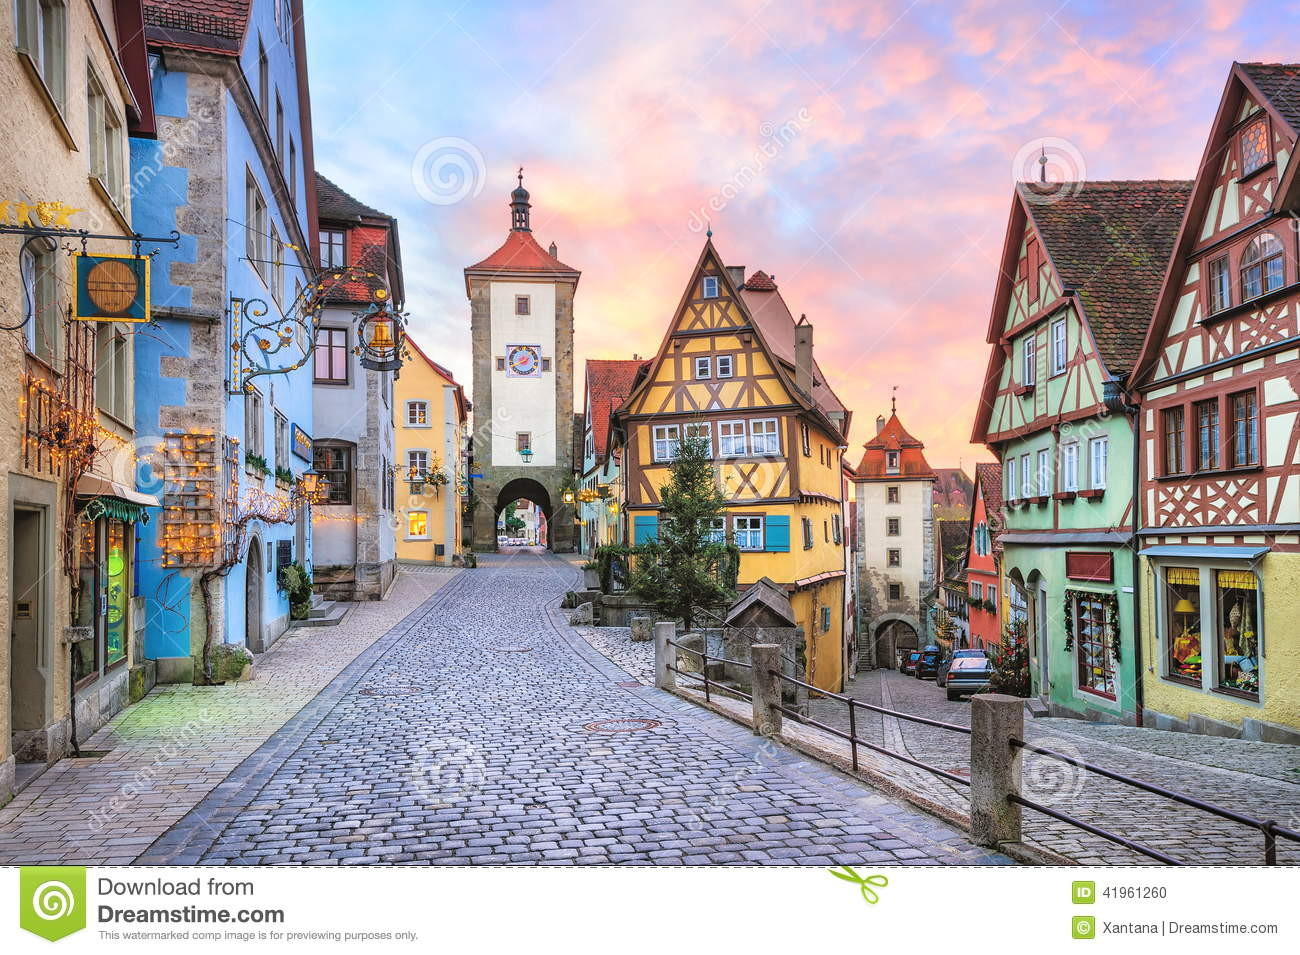 Historic Town Of Rothenburg Ob Der Tauber, Bavaria, Germany Stock.